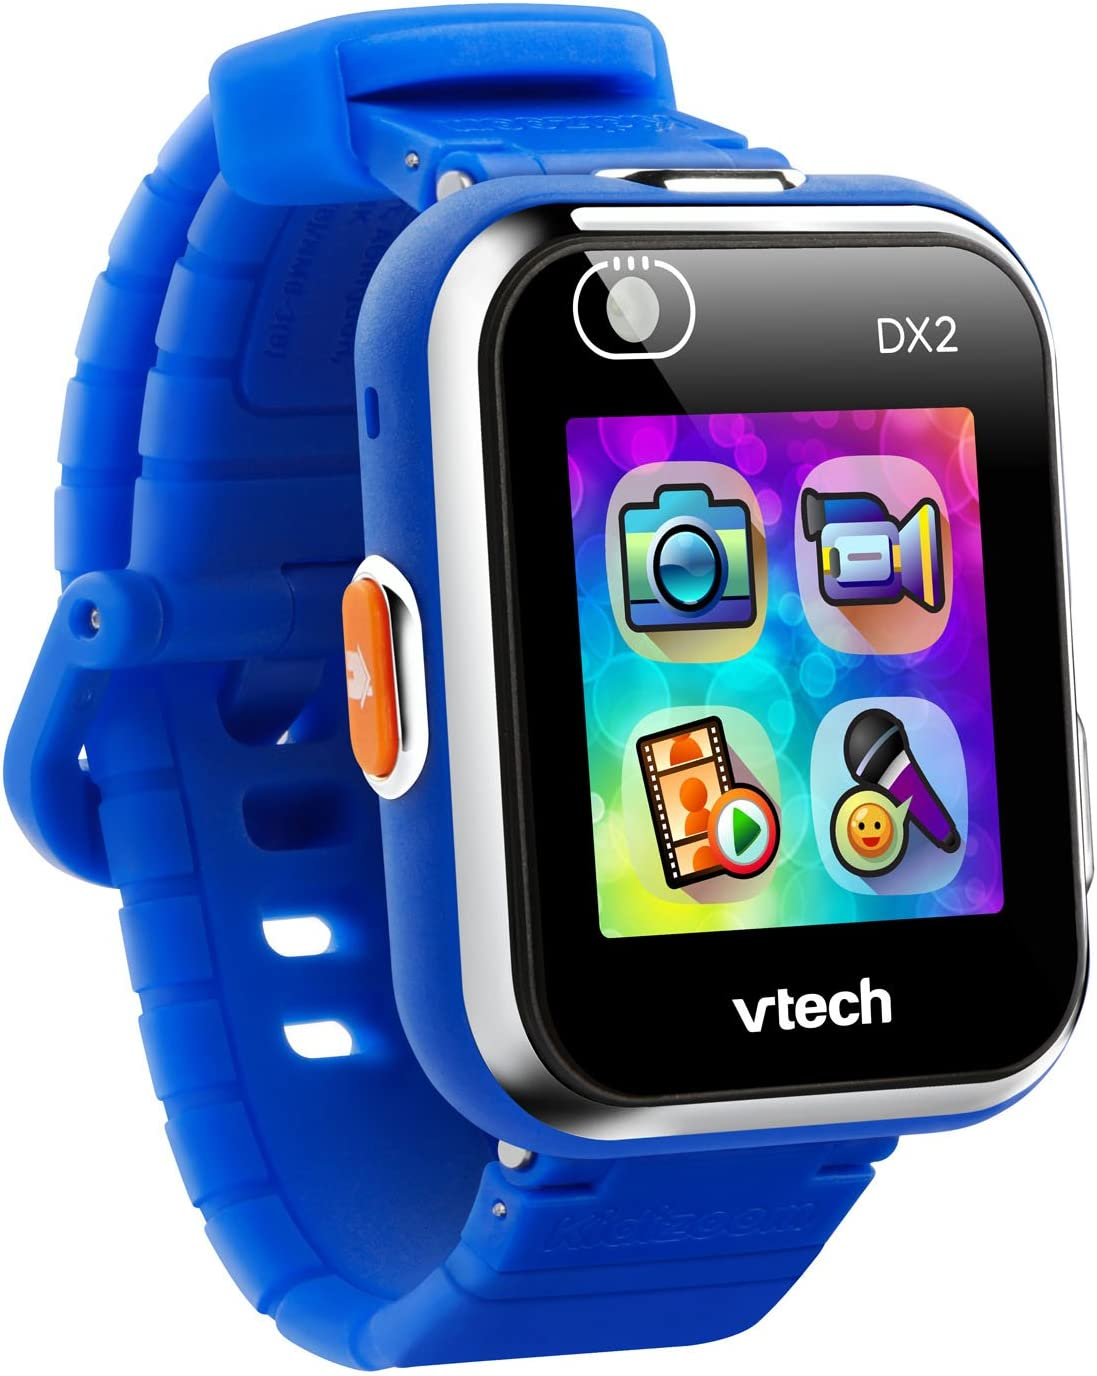 VTech KidiZoom Smartwatch DX2, Blue, Great Gift For Kids, Toddlers, Toy for Boys and Girls, Ages 4, 5, 6, 7, 8, 9